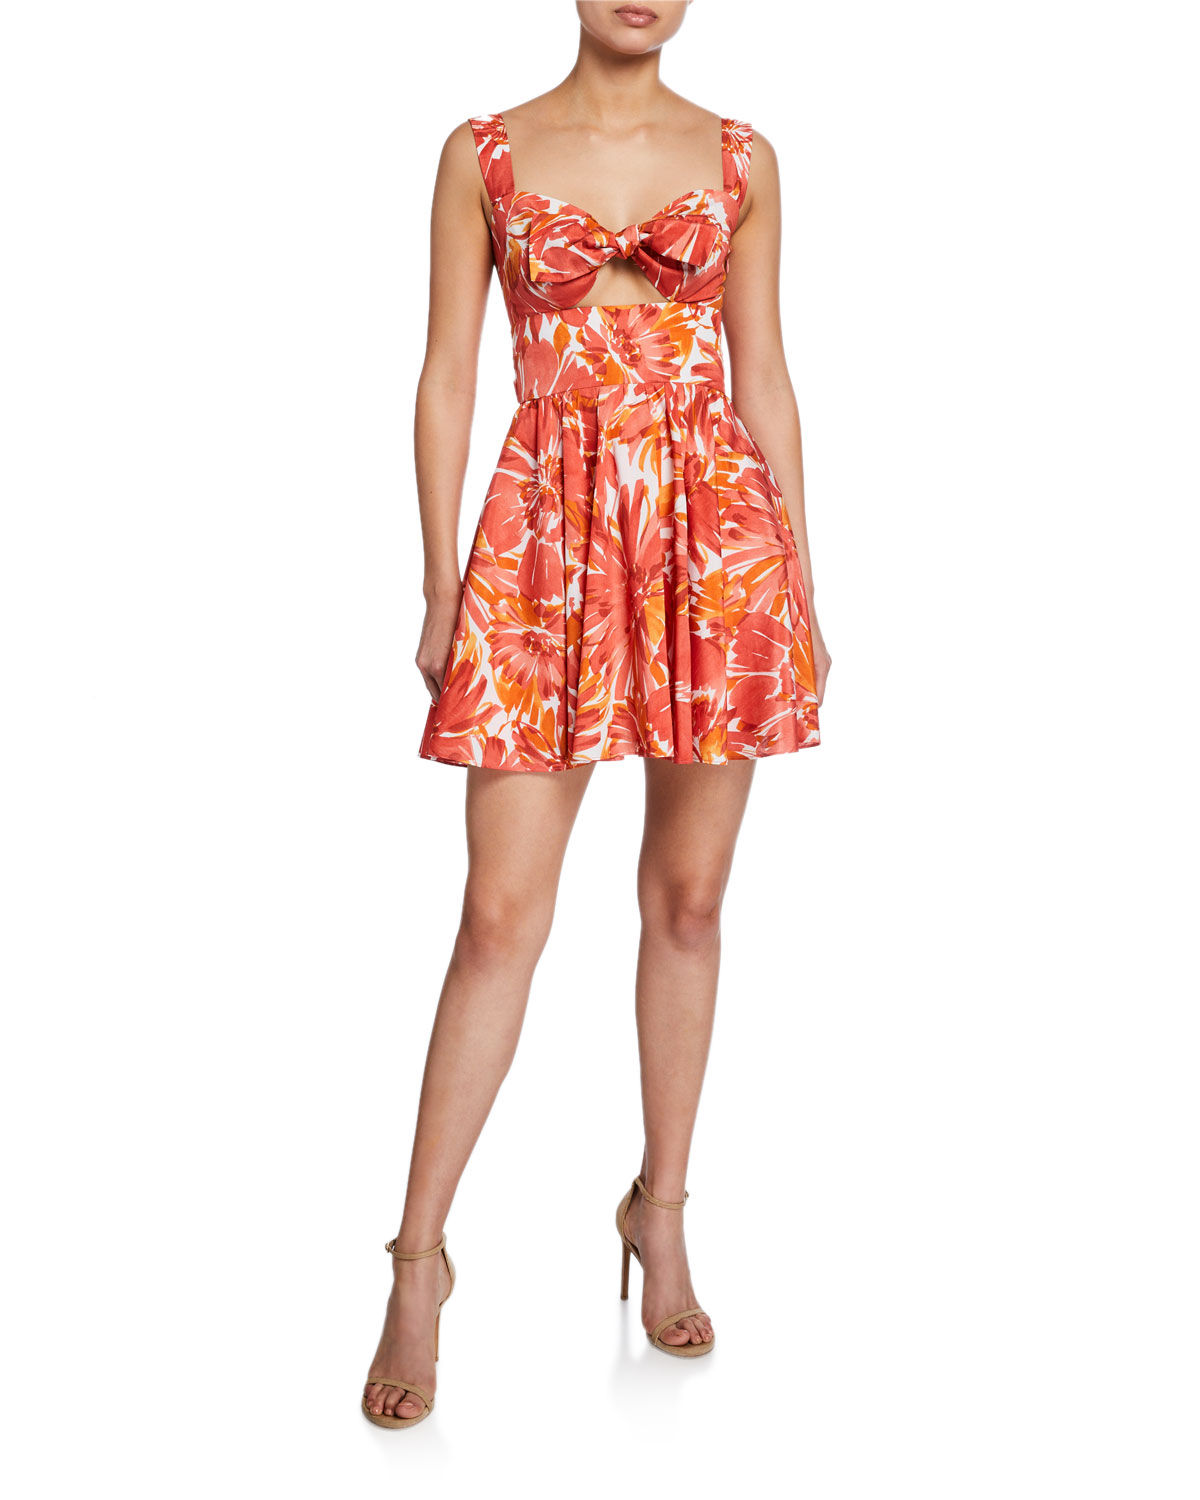 eeb19e7b4d2a1 Alexis Ilda Floral-Print Sweetheart Fit-&-Flare Dress | Neiman Marcus